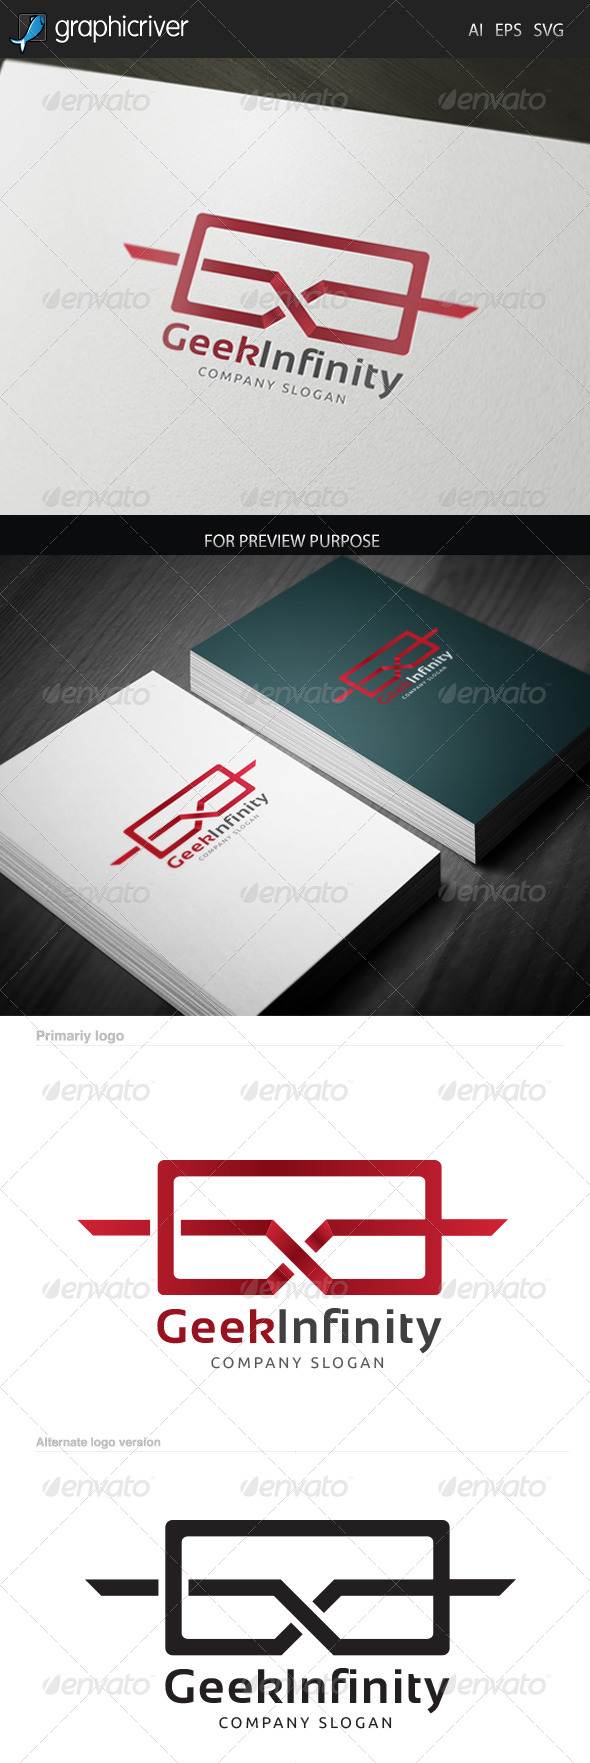 GraphicRiver Geek Infinity Logo 6552668